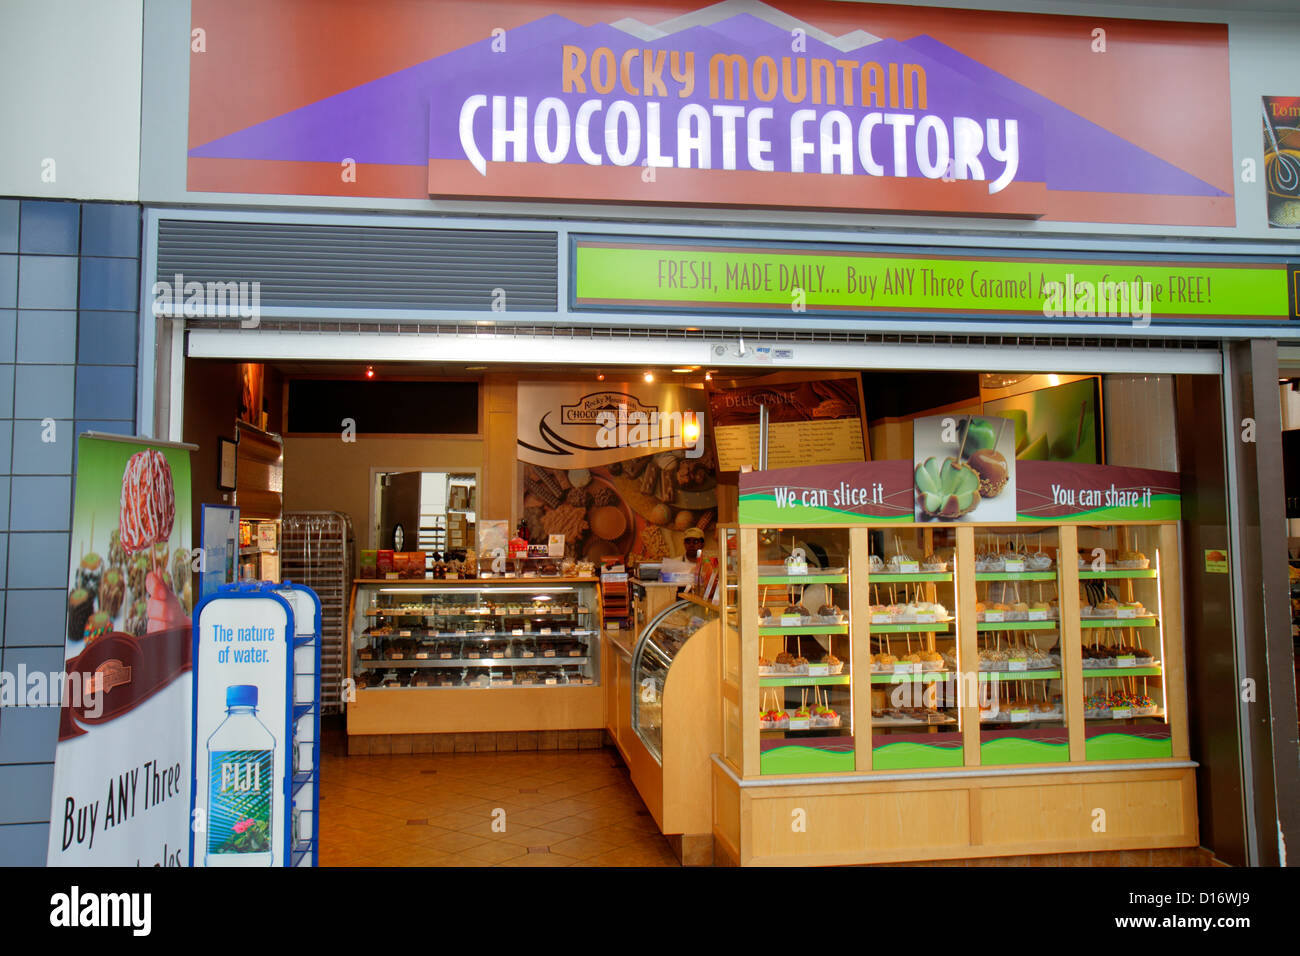 rocky mountain chocolate factory shop in departure lounge of ...